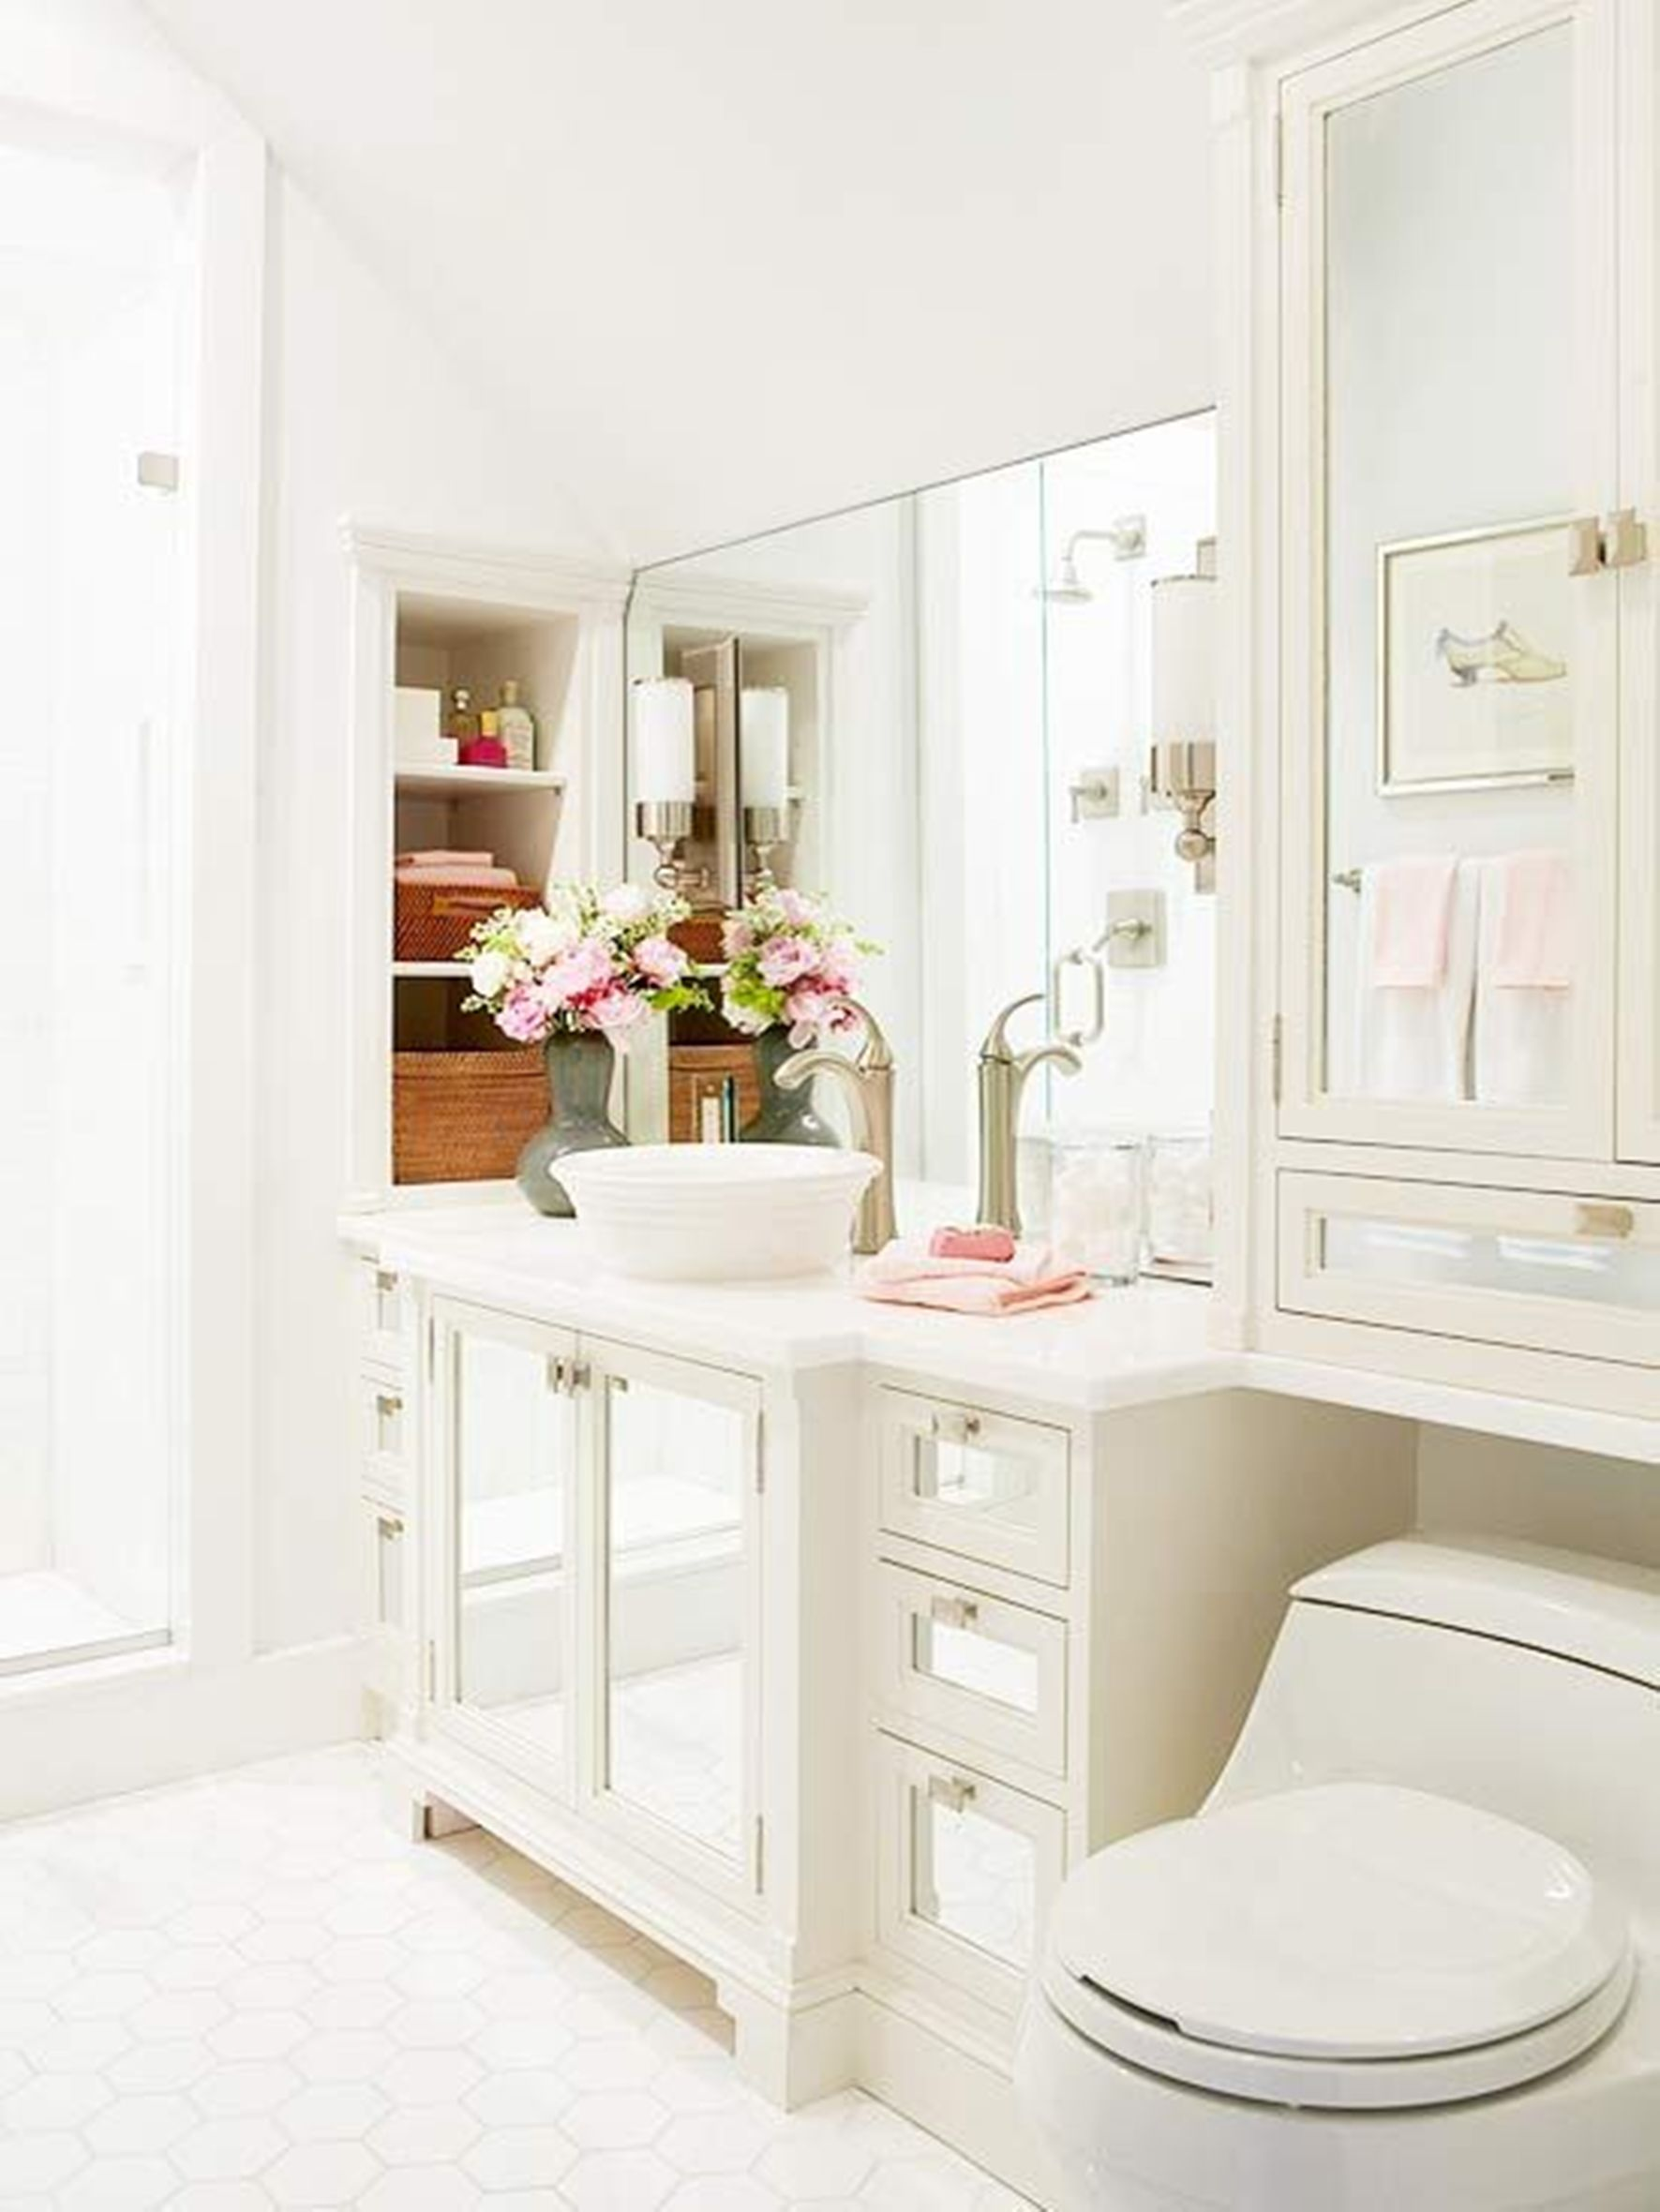 How to Make the Concepts for Your Mirrored Bathroom Vanity ...